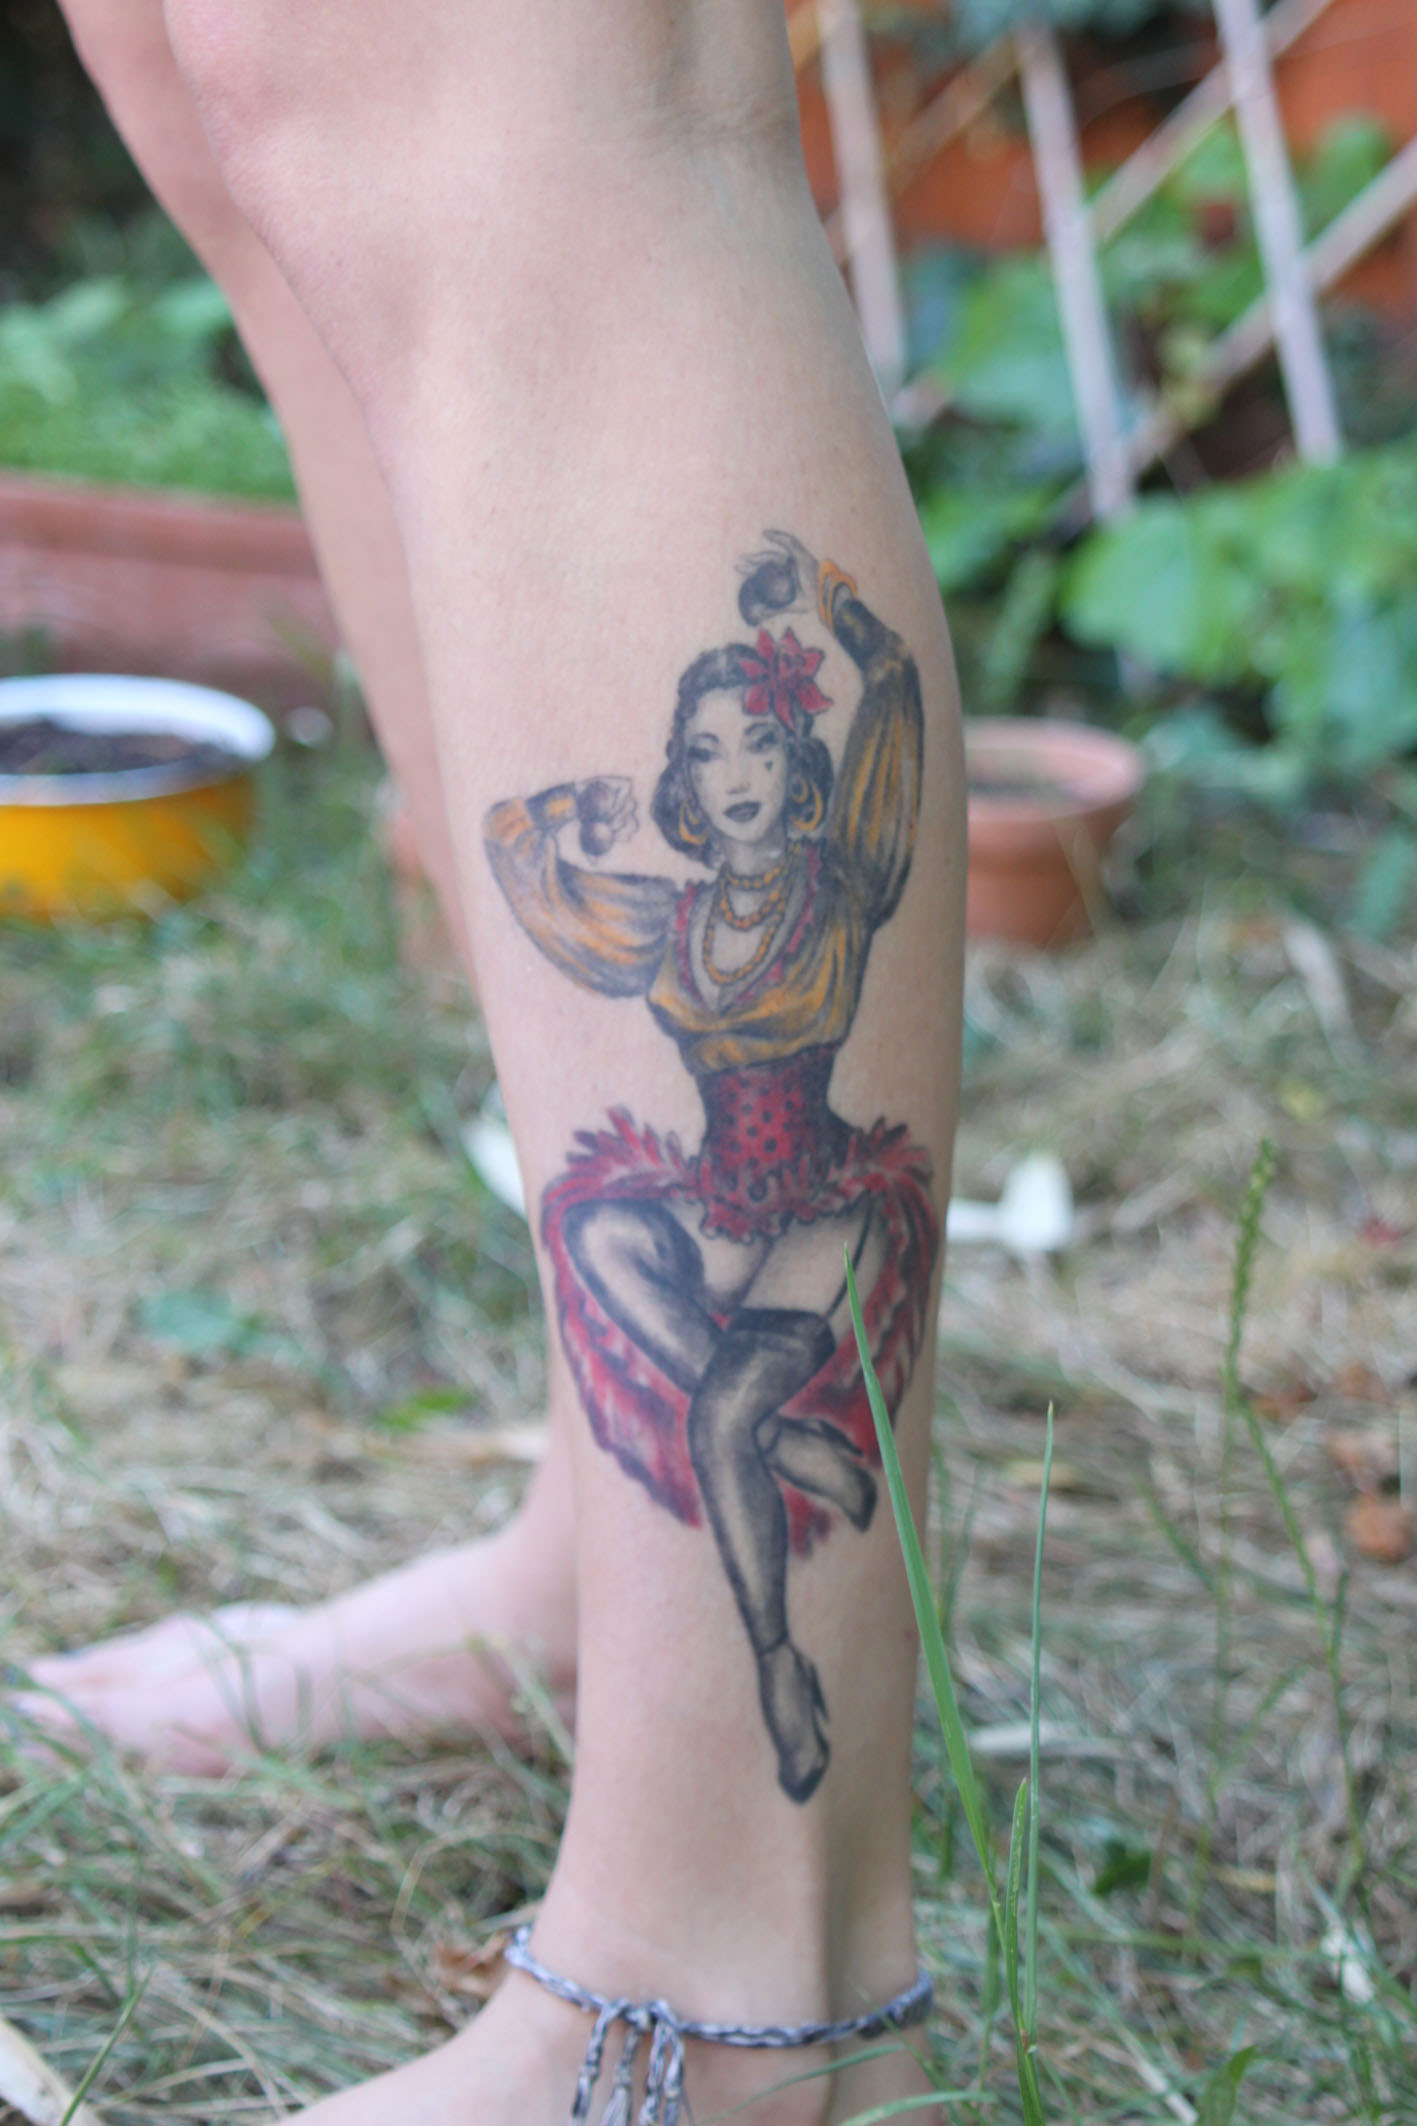 Dancer on leg